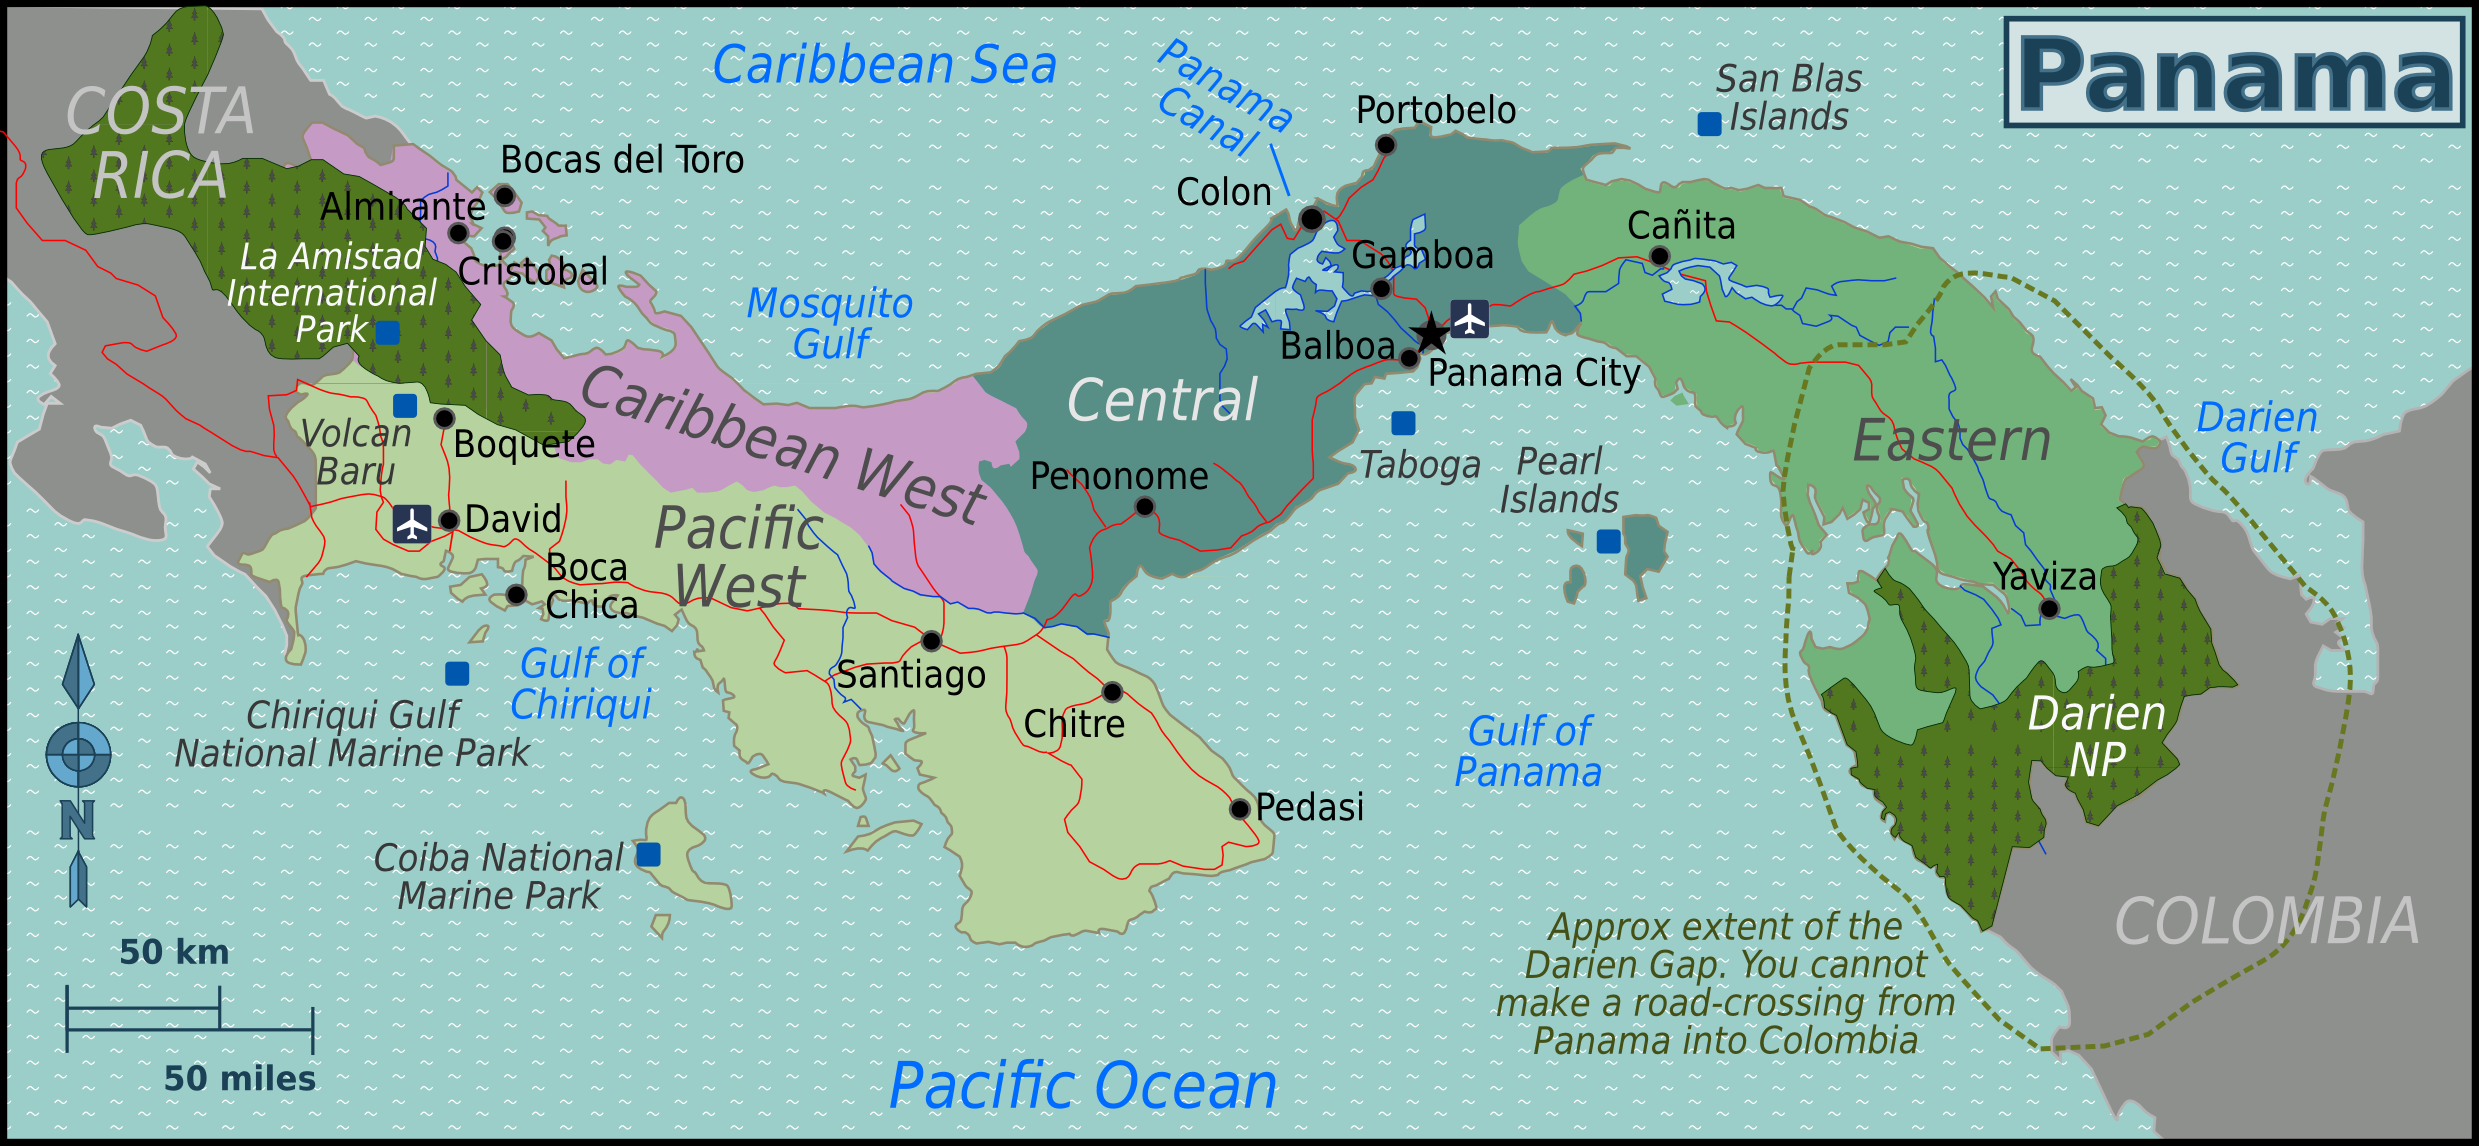 Description Panama Regions map.png